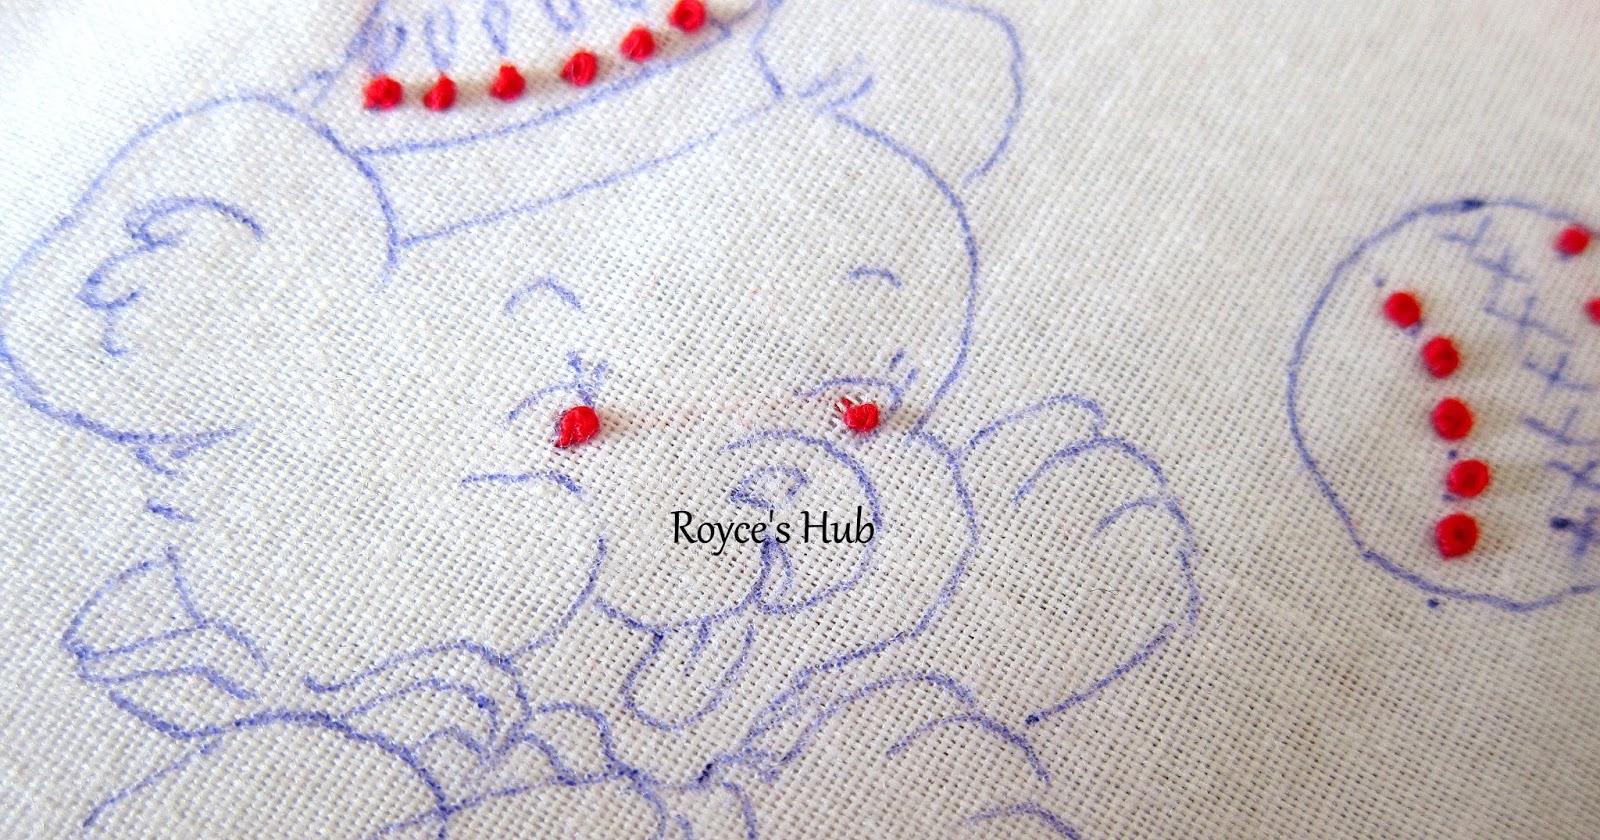 Royce s hub basic embroidery stitches french knot